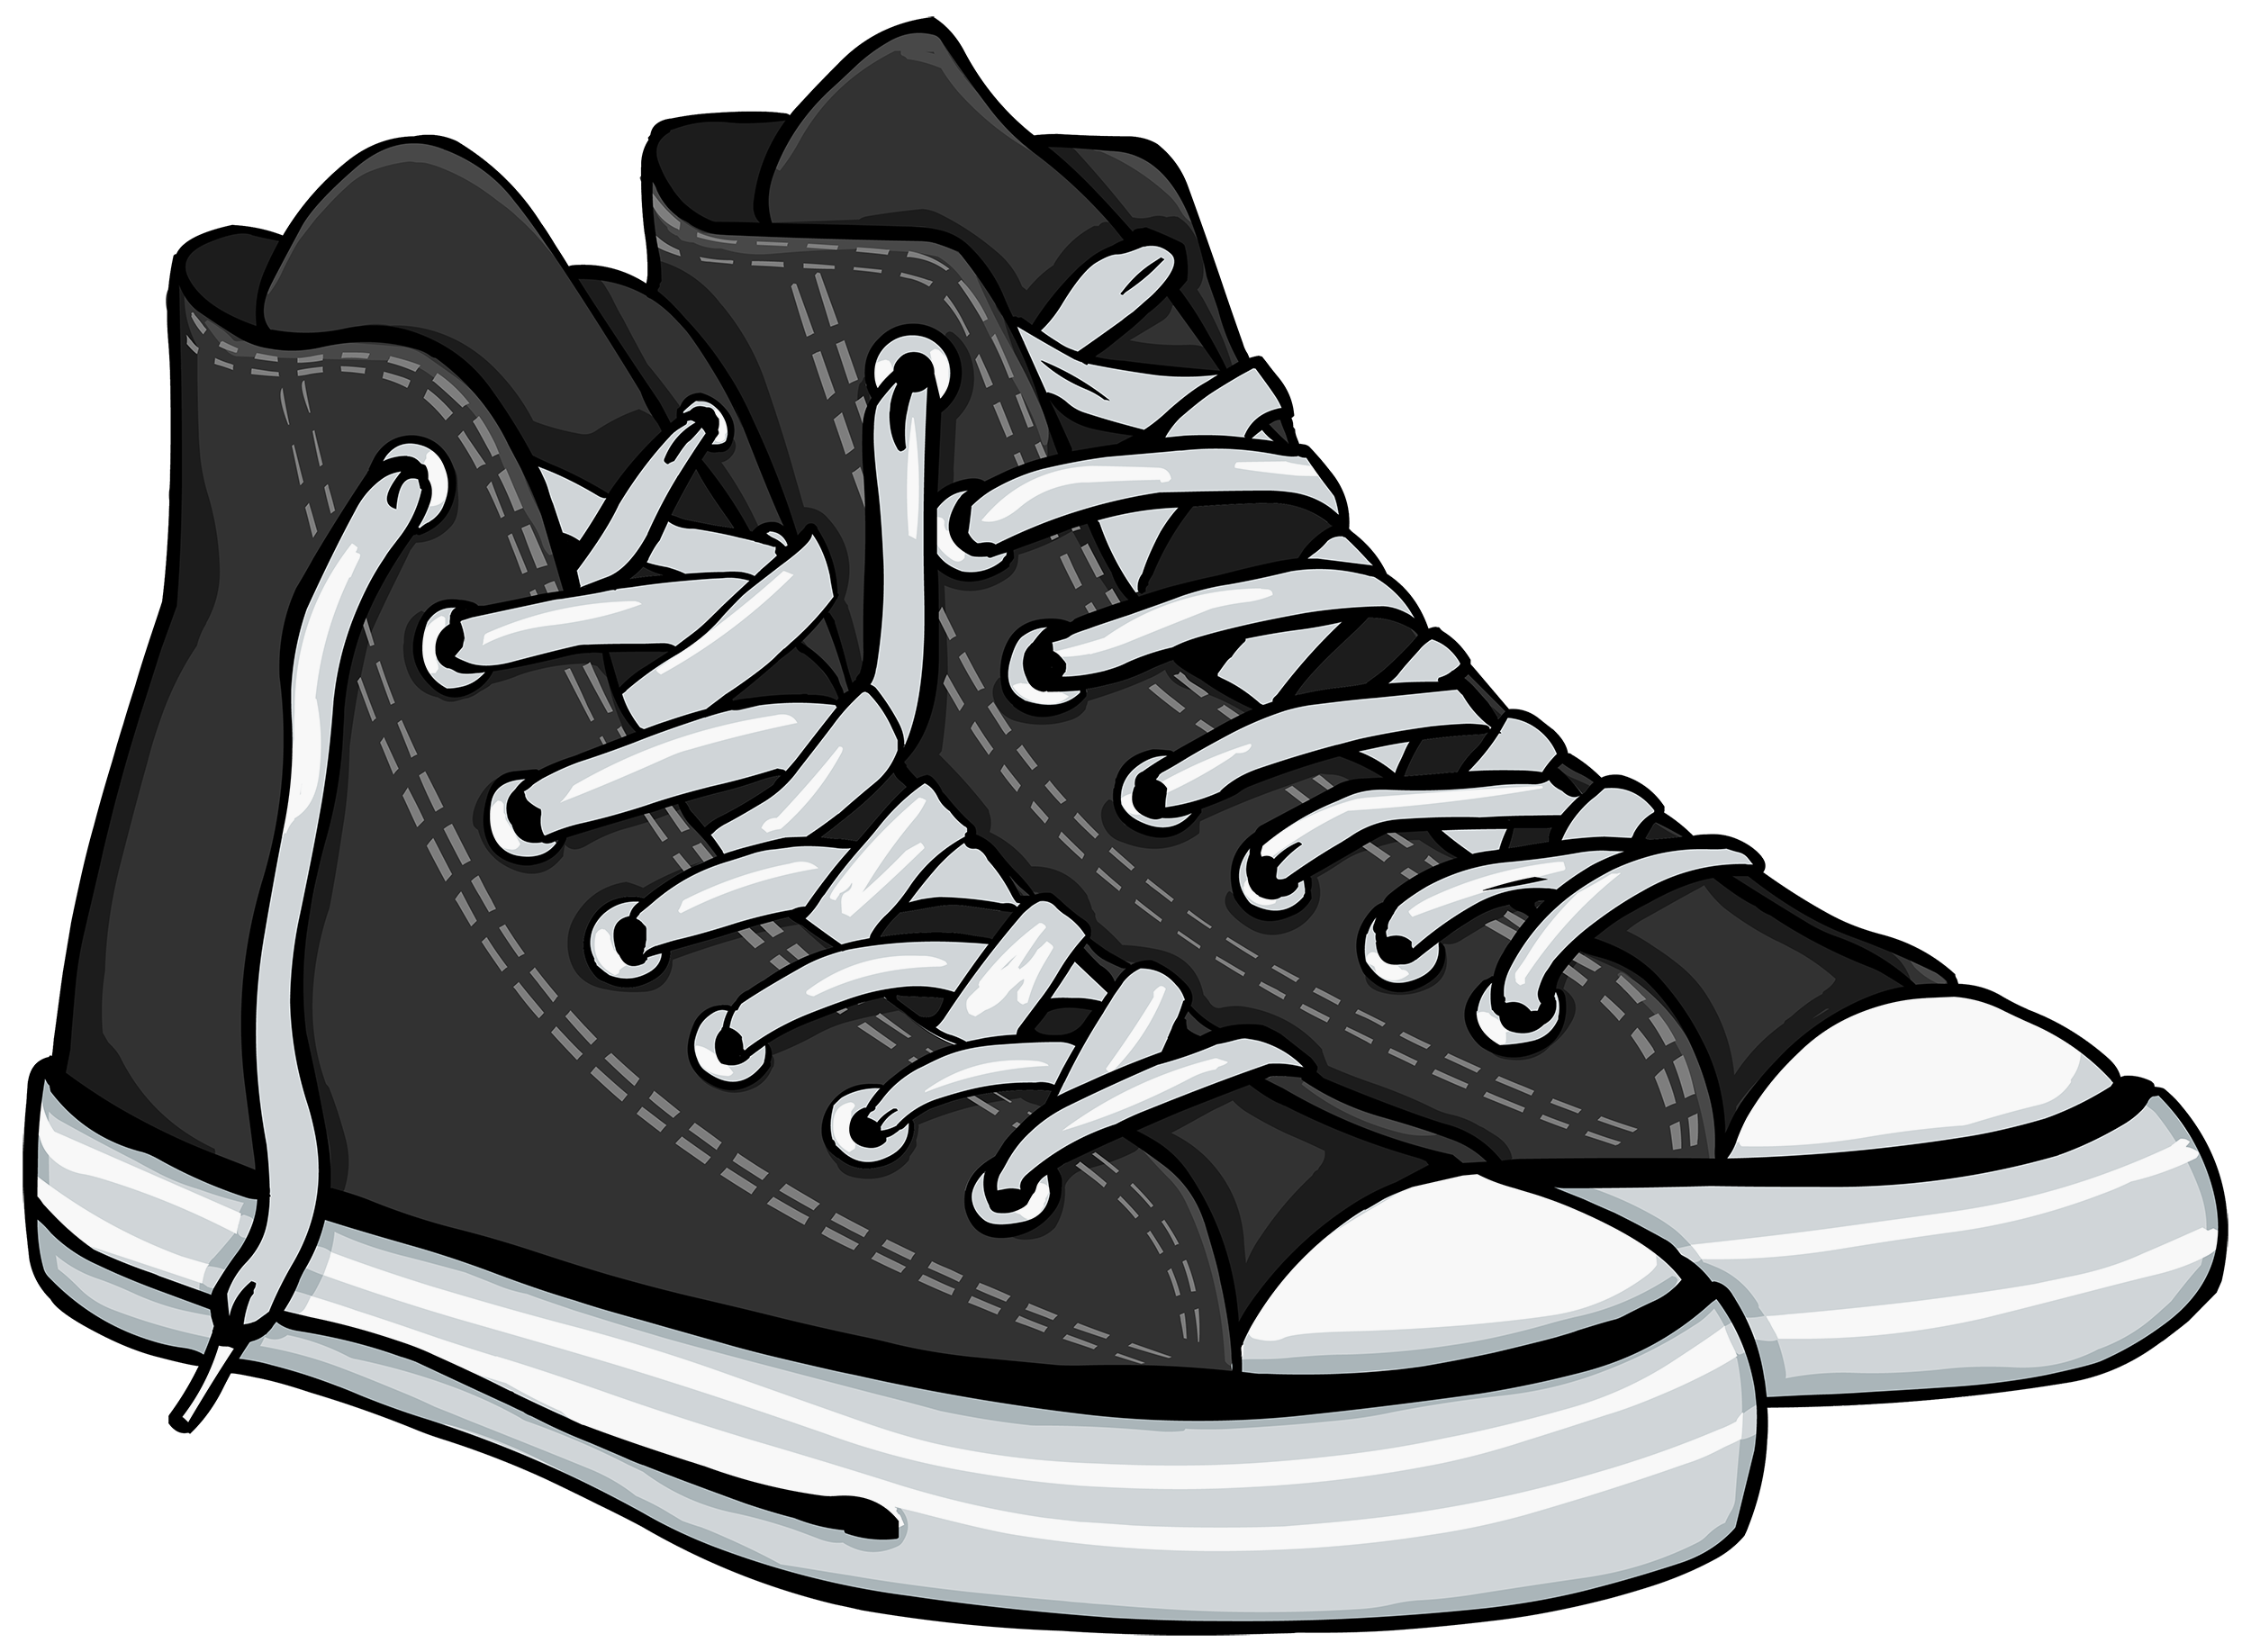 Free tennis shoe border clipart png. Shoes black and white